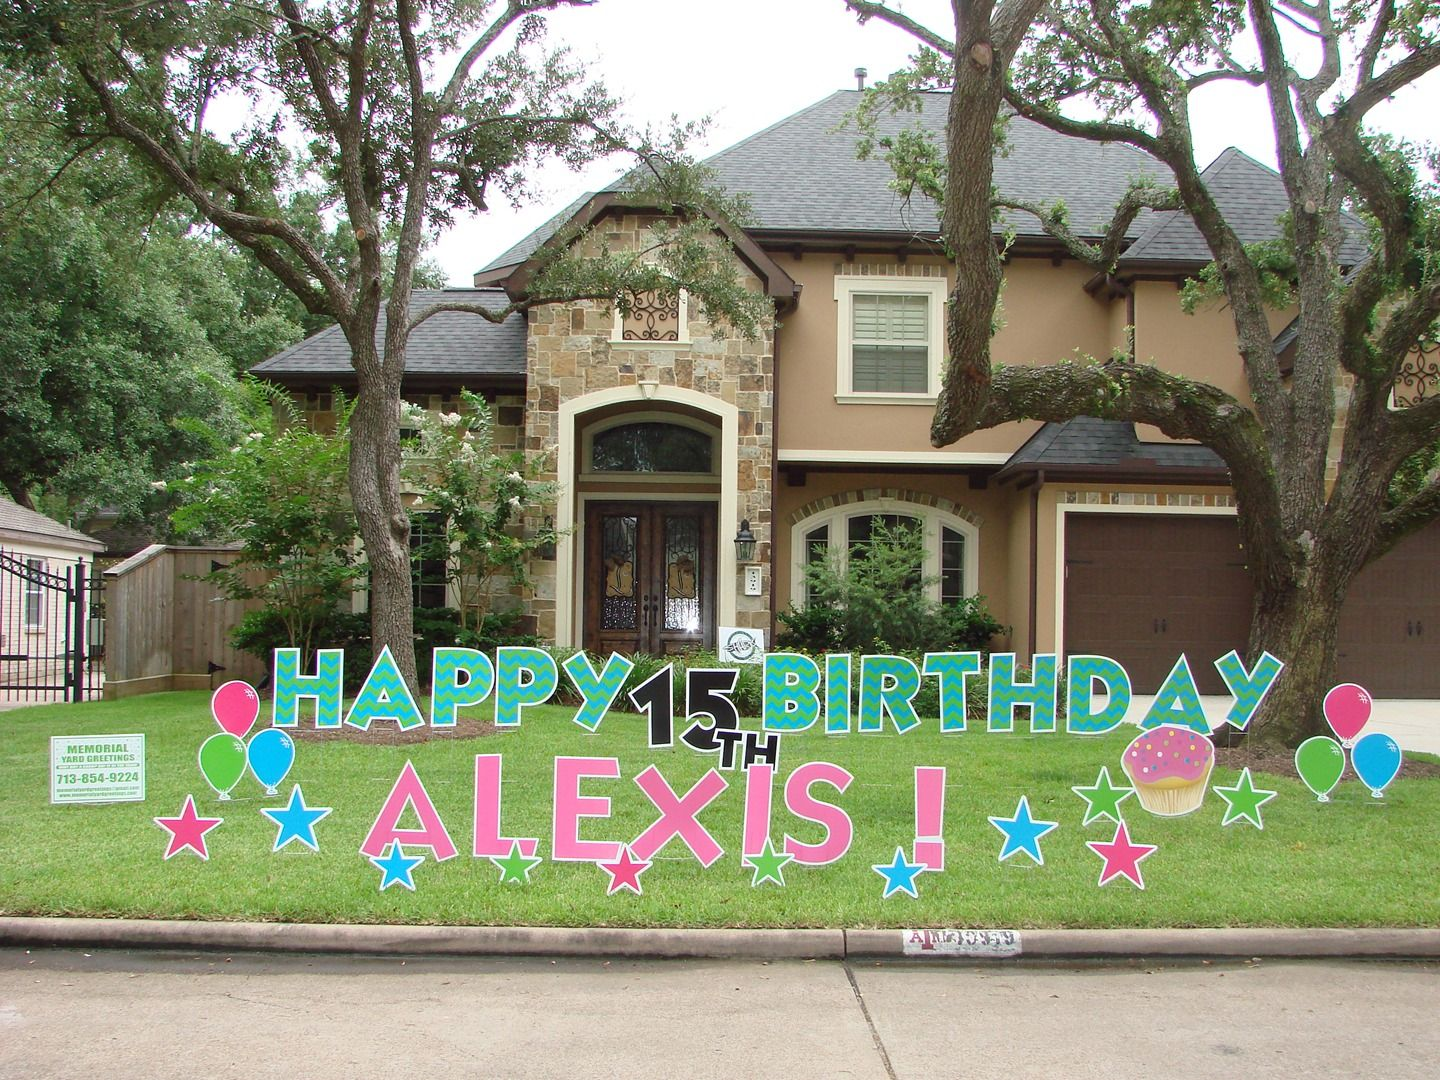 Yard Greeting Rentals Yard Cards Memorial Yard Greetings Houston Tx Yard Cards Happy Birthday Yard Signs Birthday Yard Signs